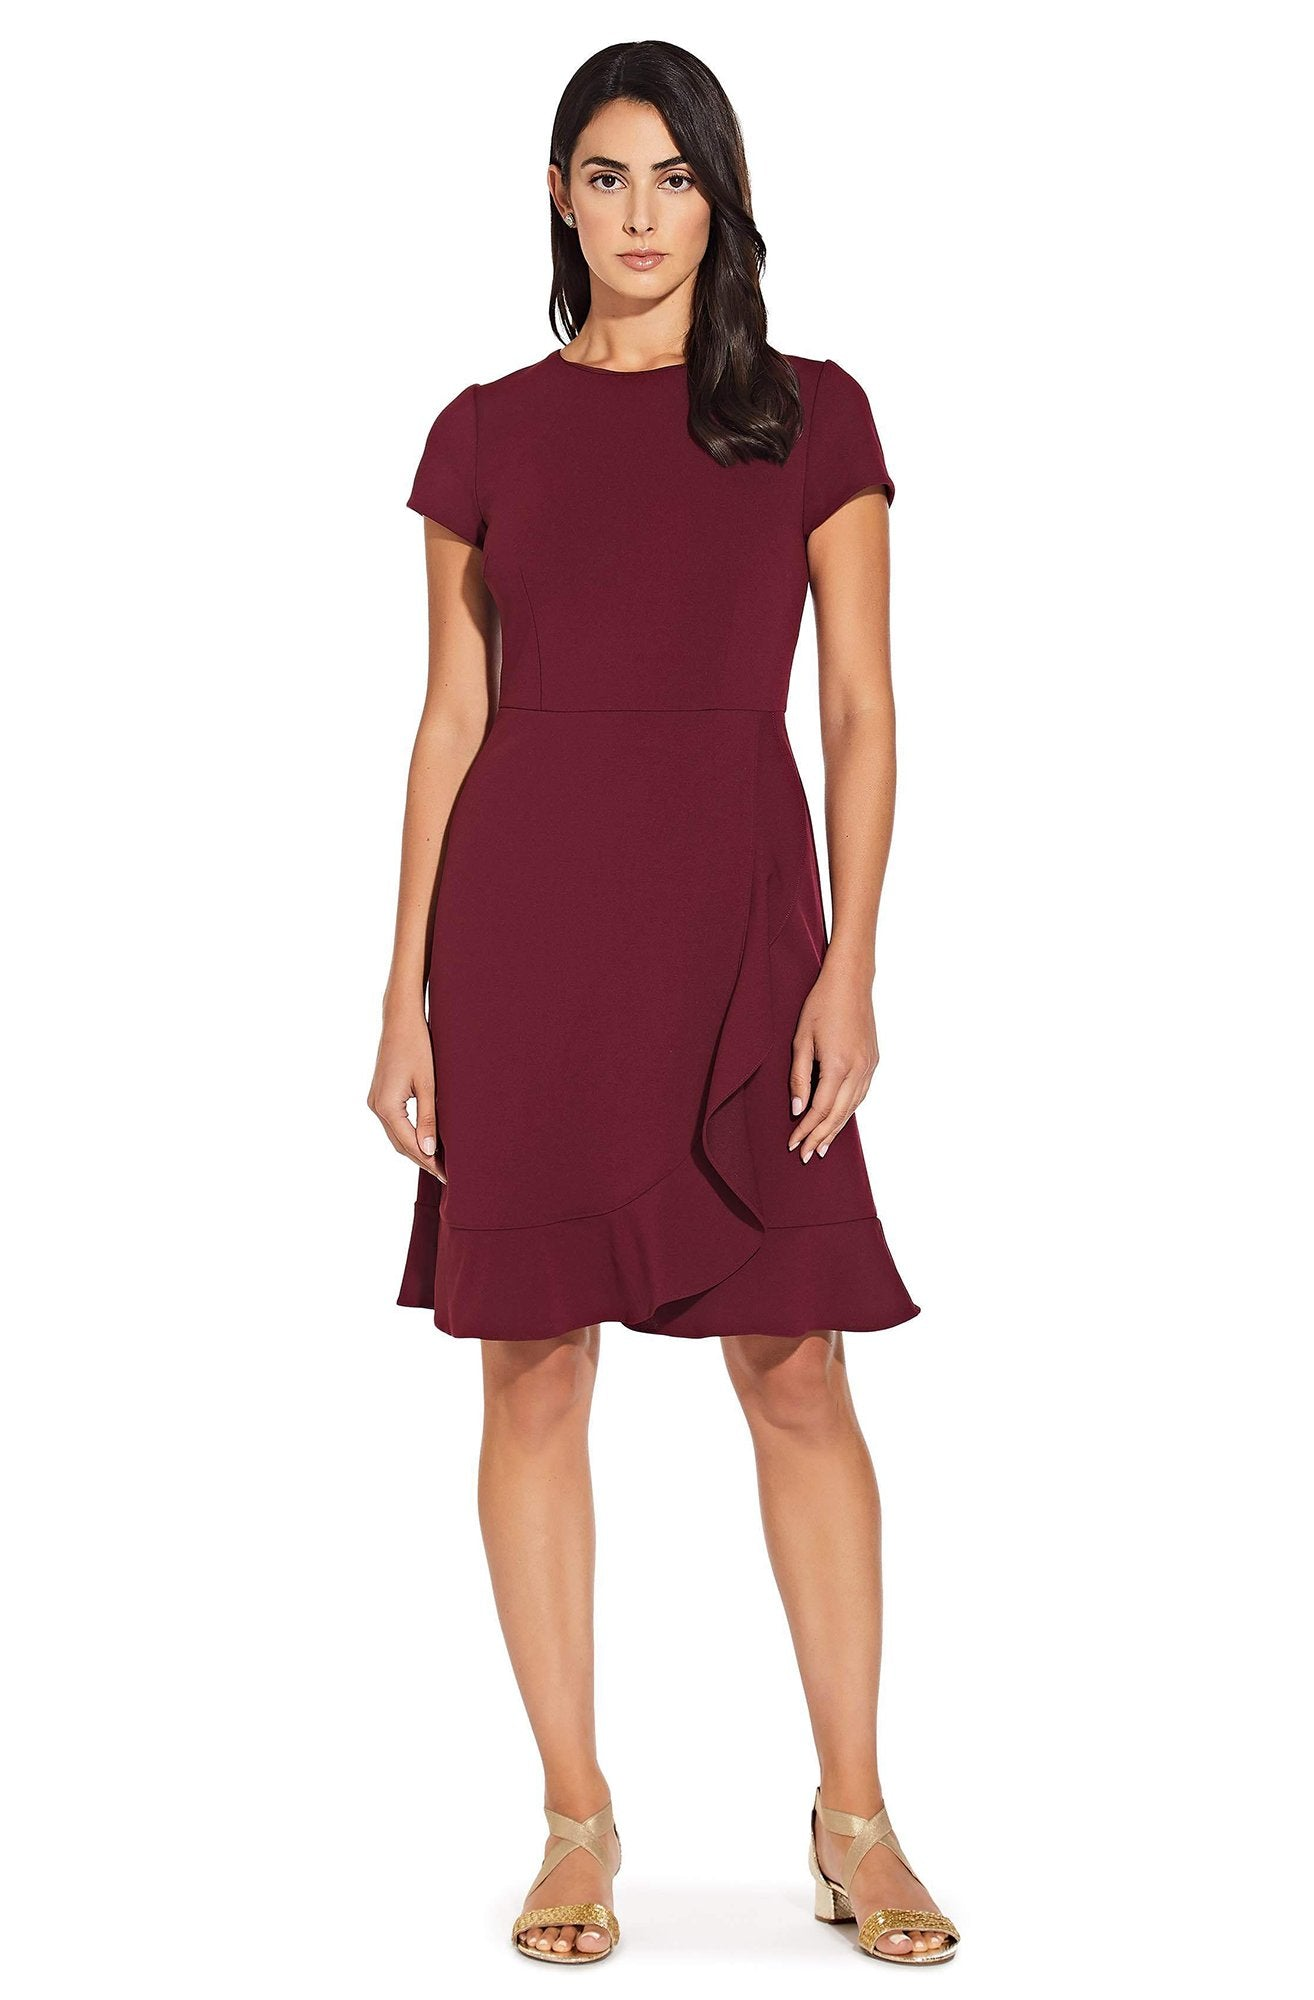 Adrianna Papell - AP1D102494 Jewel Short Sleeves Cocktail Dress In Red